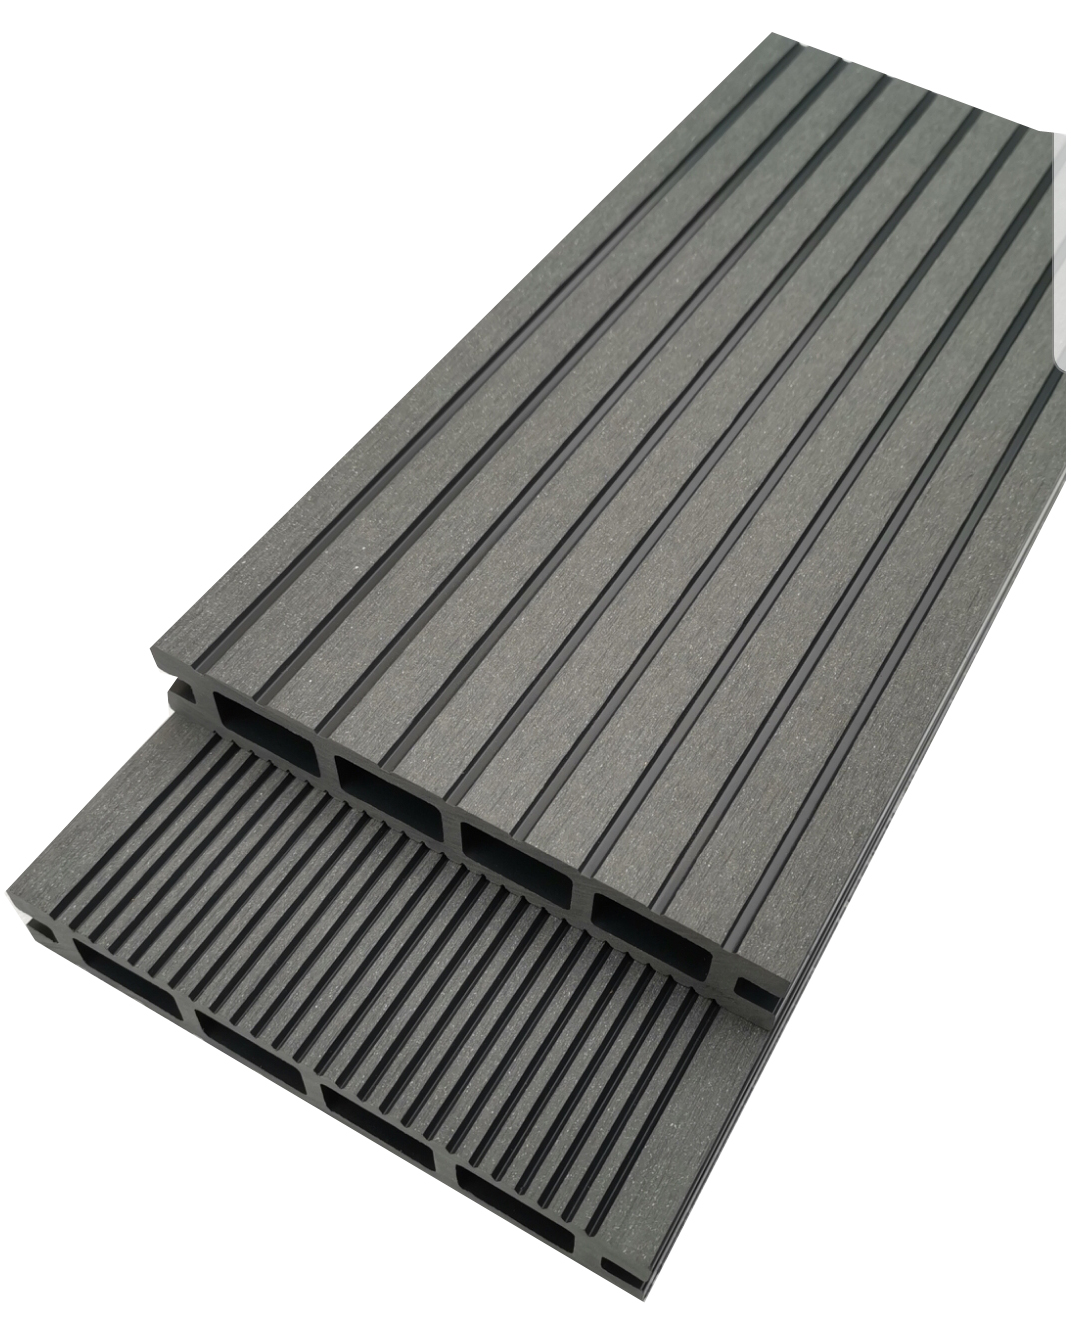 Anthracite Grey Composite Decking Board Ultra Decking Home Choice